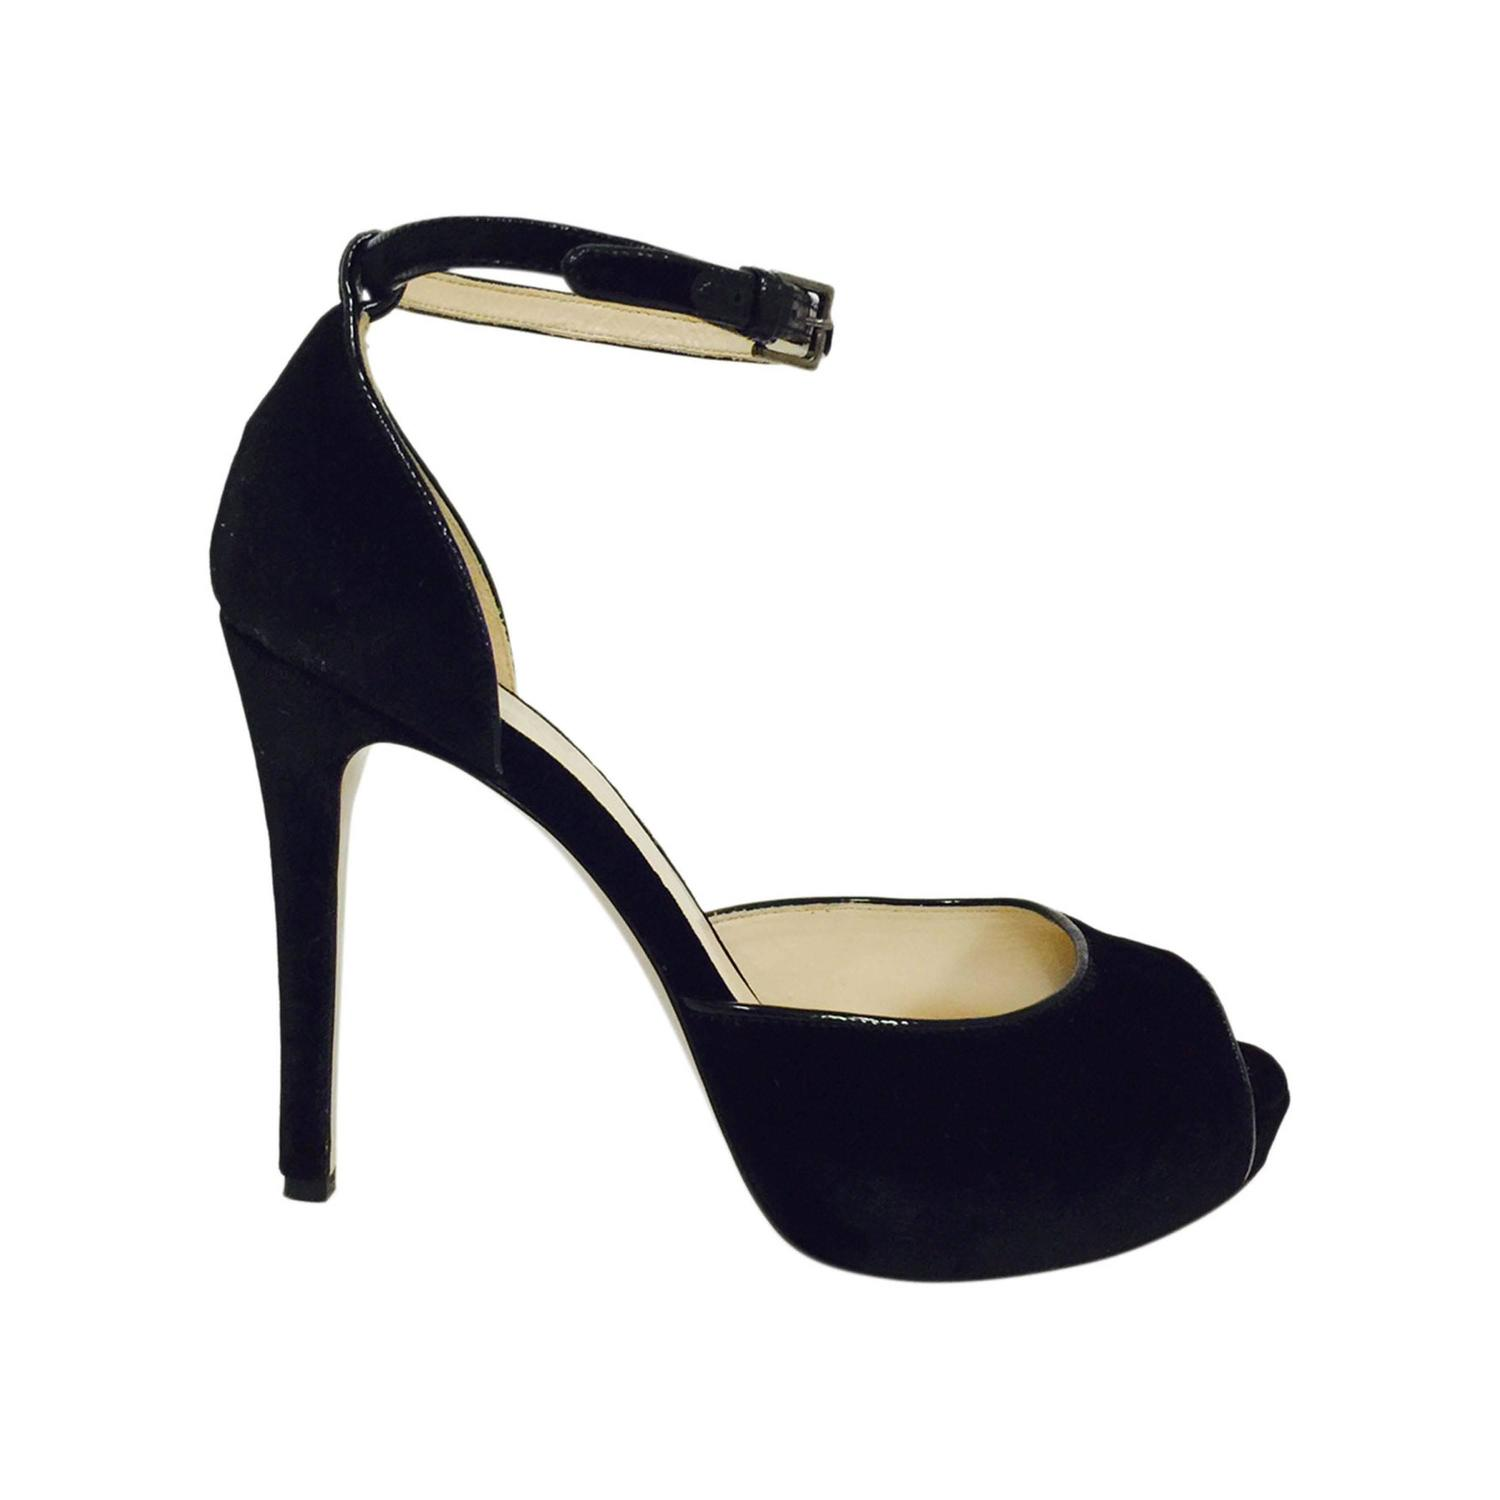 This strappy black high heeled platform sandal is reminiscent of s Old Hollywood Glamour. A sexy classic that will look stunning with vintage inspired evening dresses and prom gowns. ~Black satin ~Ankle strap. ~Peep toe style with rhinestone accent. ~Wrapped platform. ~4